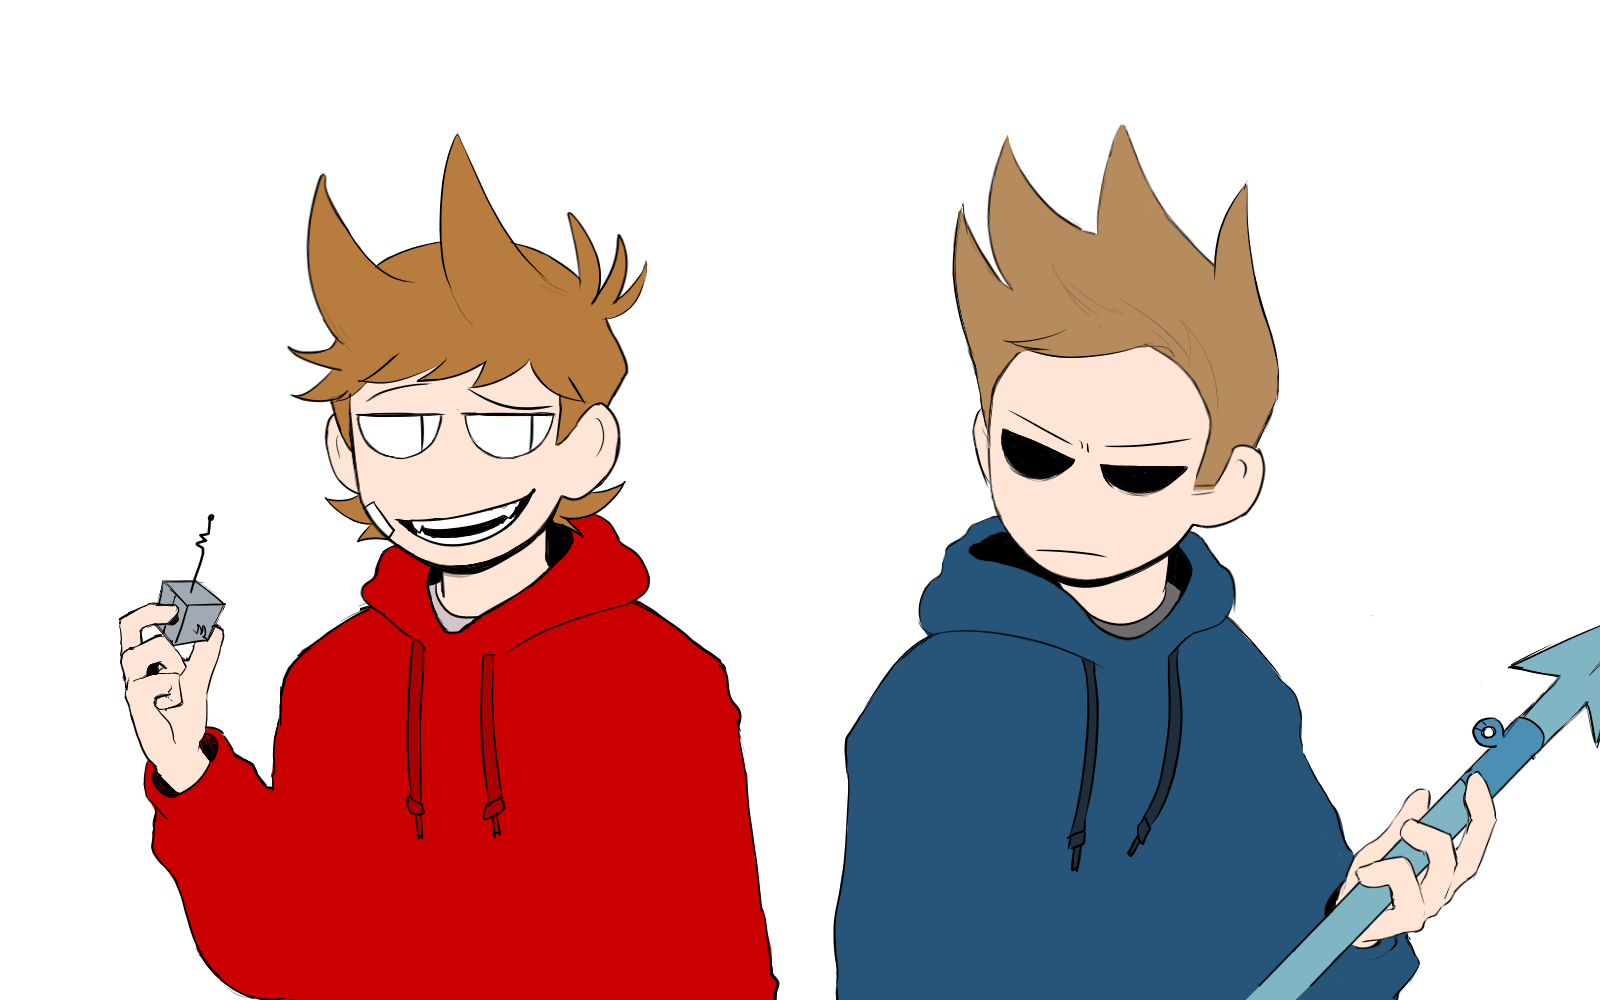 Tom drawing tord. Im gonna press the